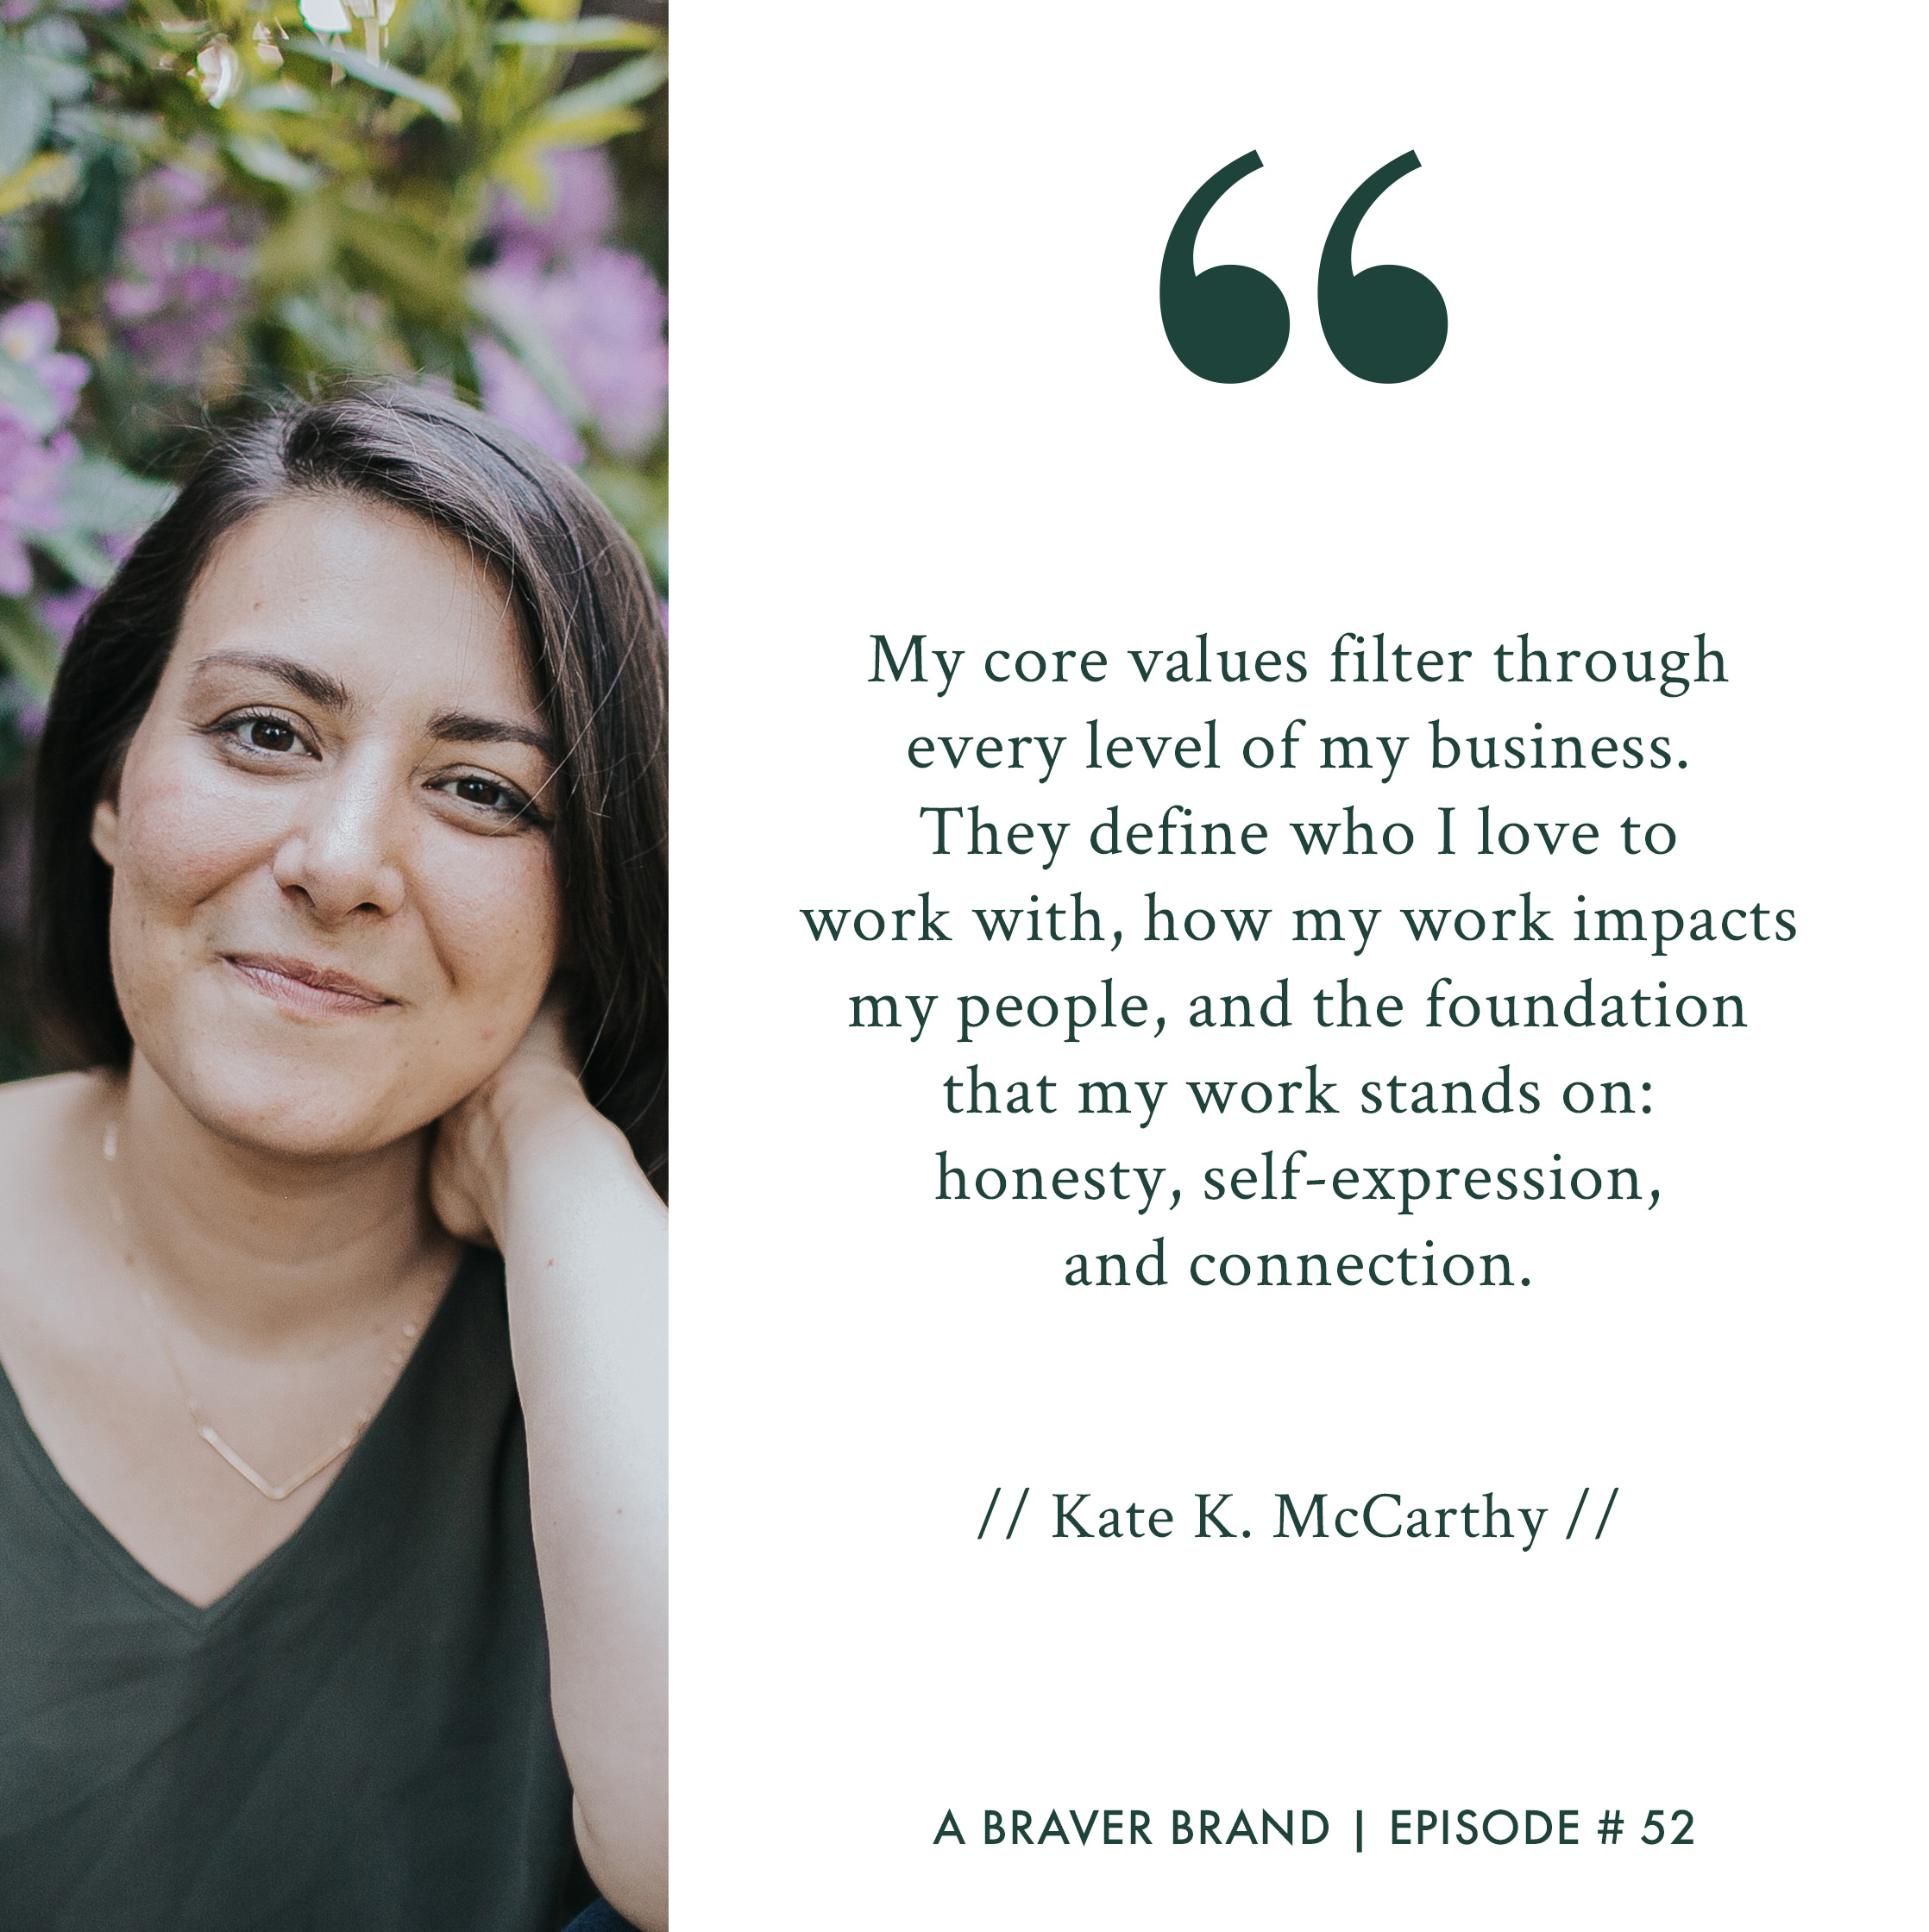 Kate K. McCarthy on core values & mission-driven entrepreneurship | A Braver Brand with Kate K. McCarthy